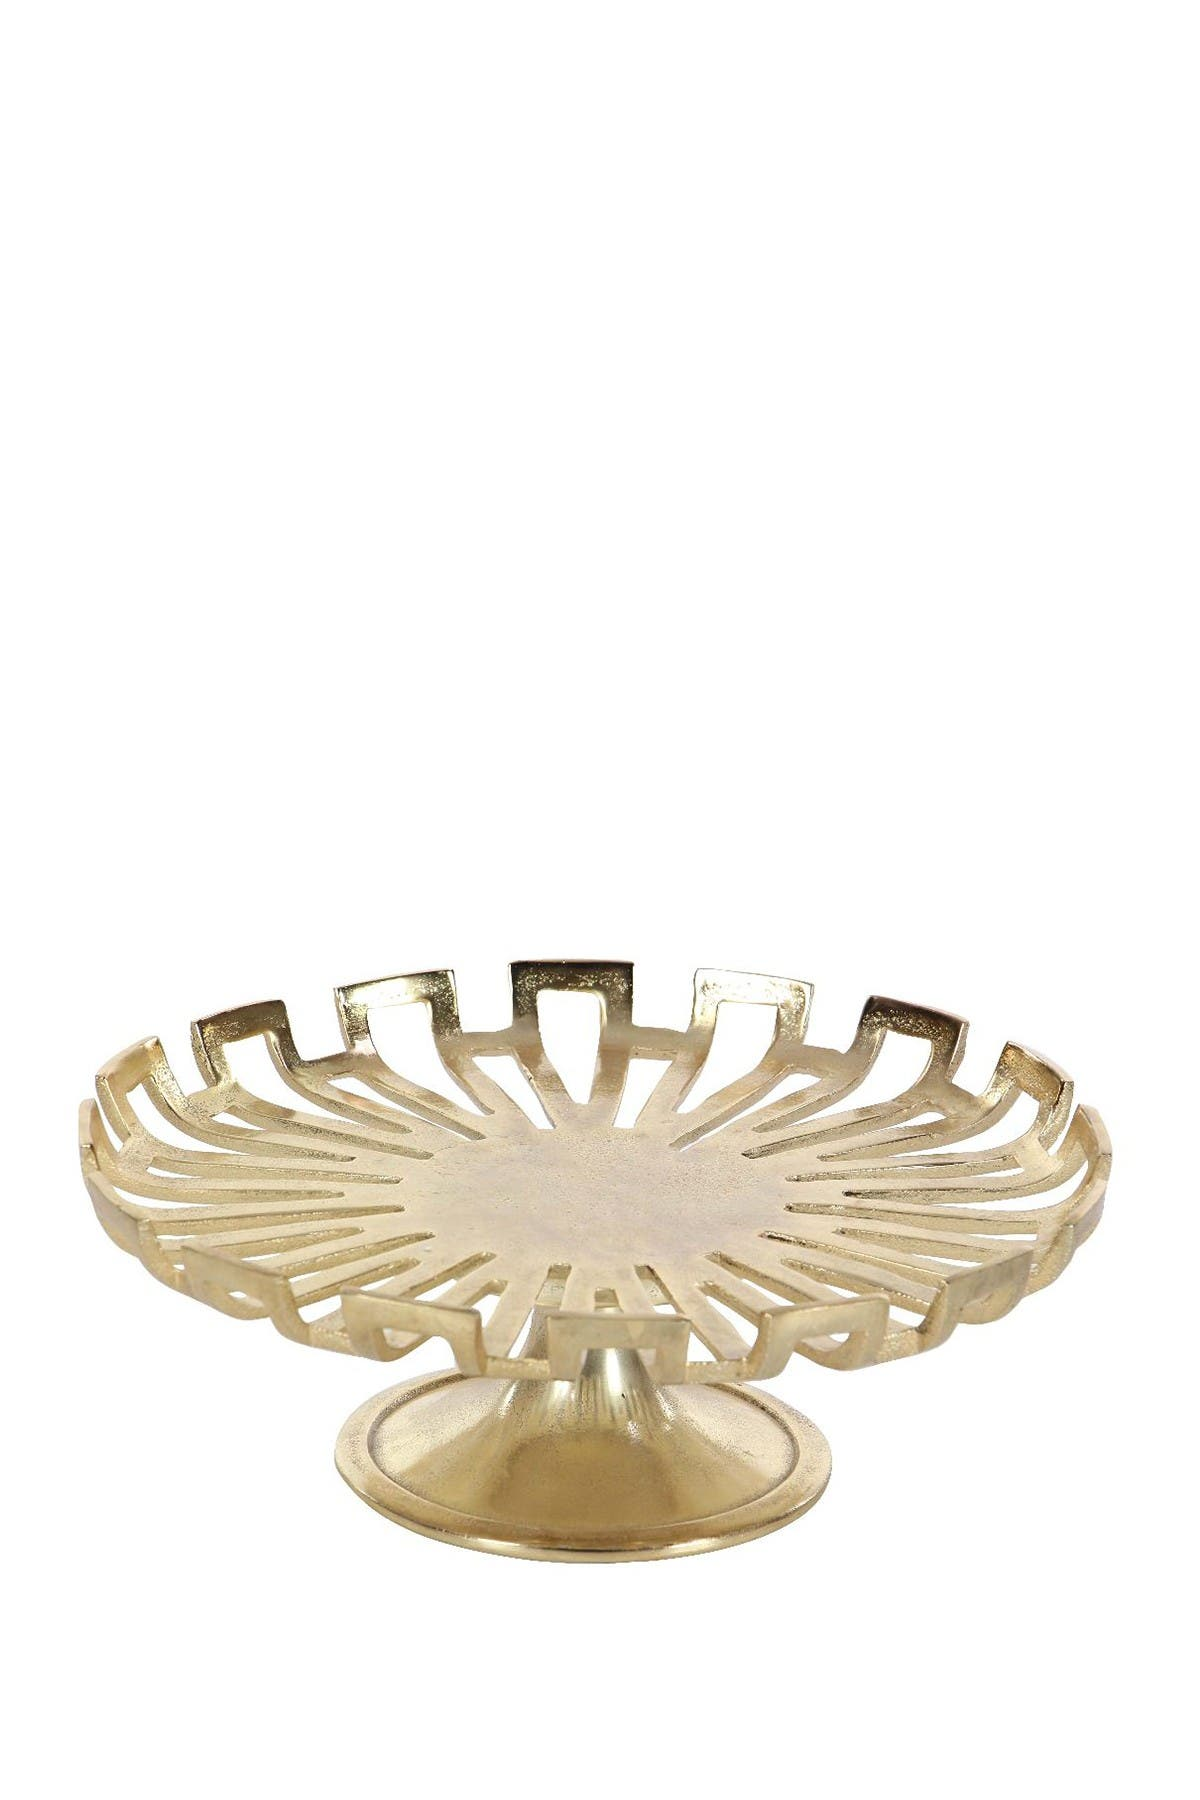 Image of Willow Row Glam Gold Aluminum Round Cake Stand